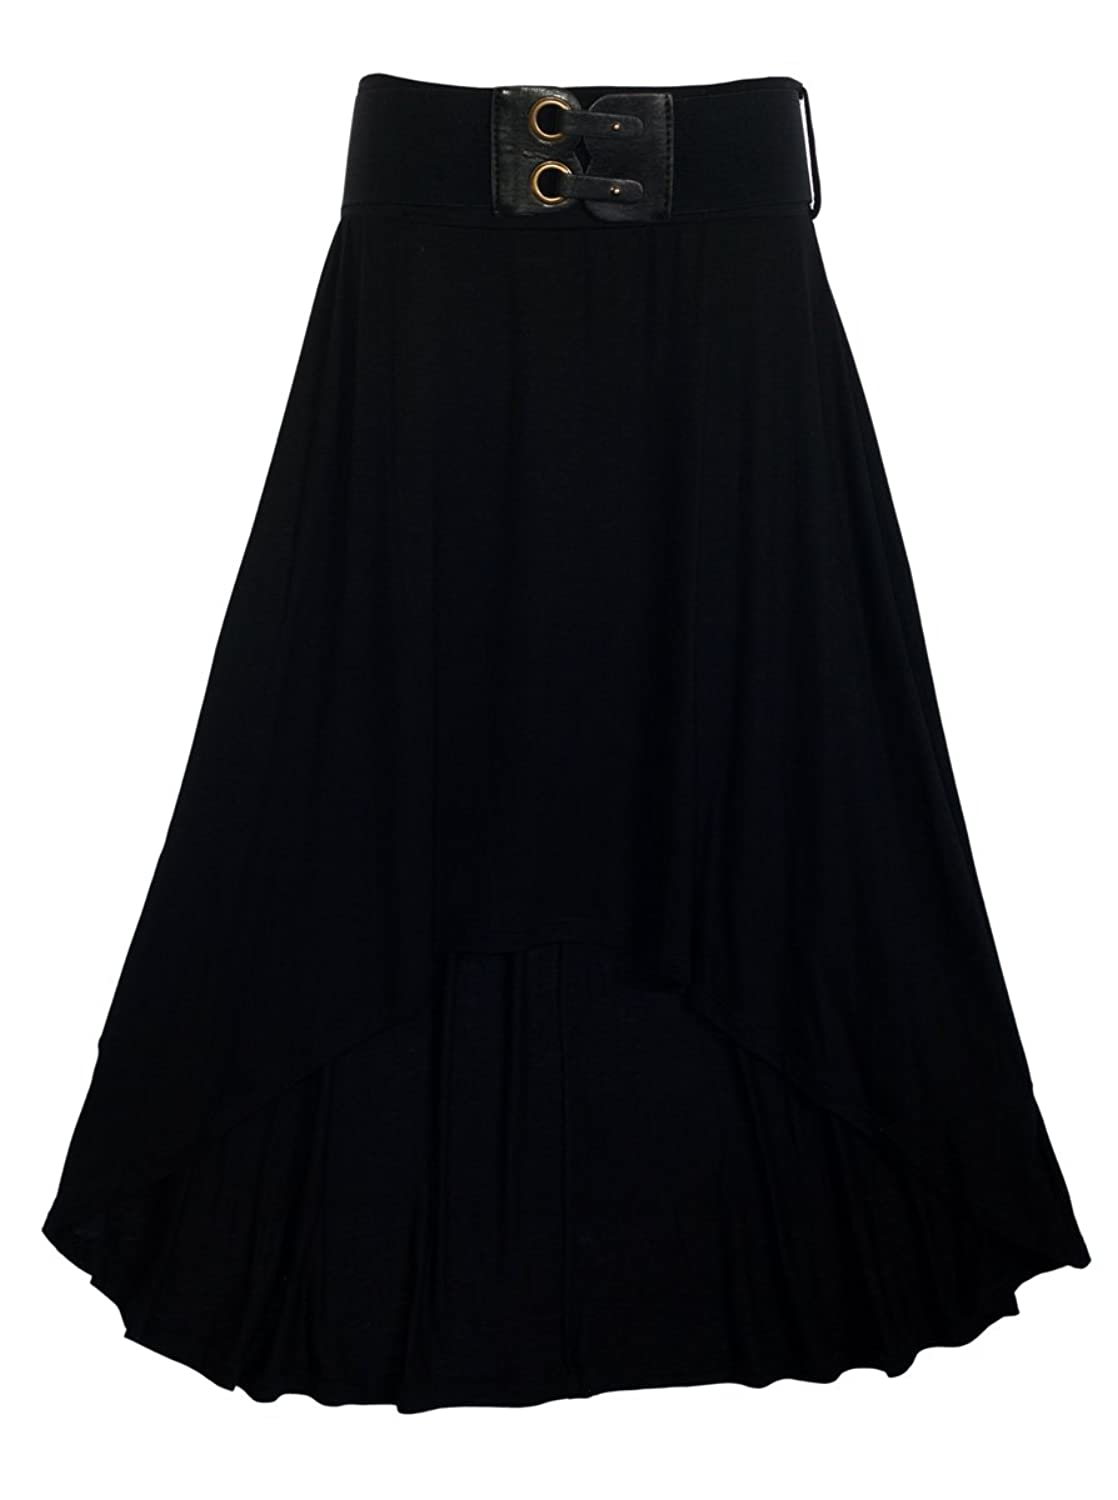 Steampunk Plus Size Clothing eVogues Plus size High Low Skirt with Elastic Belt Black $29.99 AT vintagedancer.com